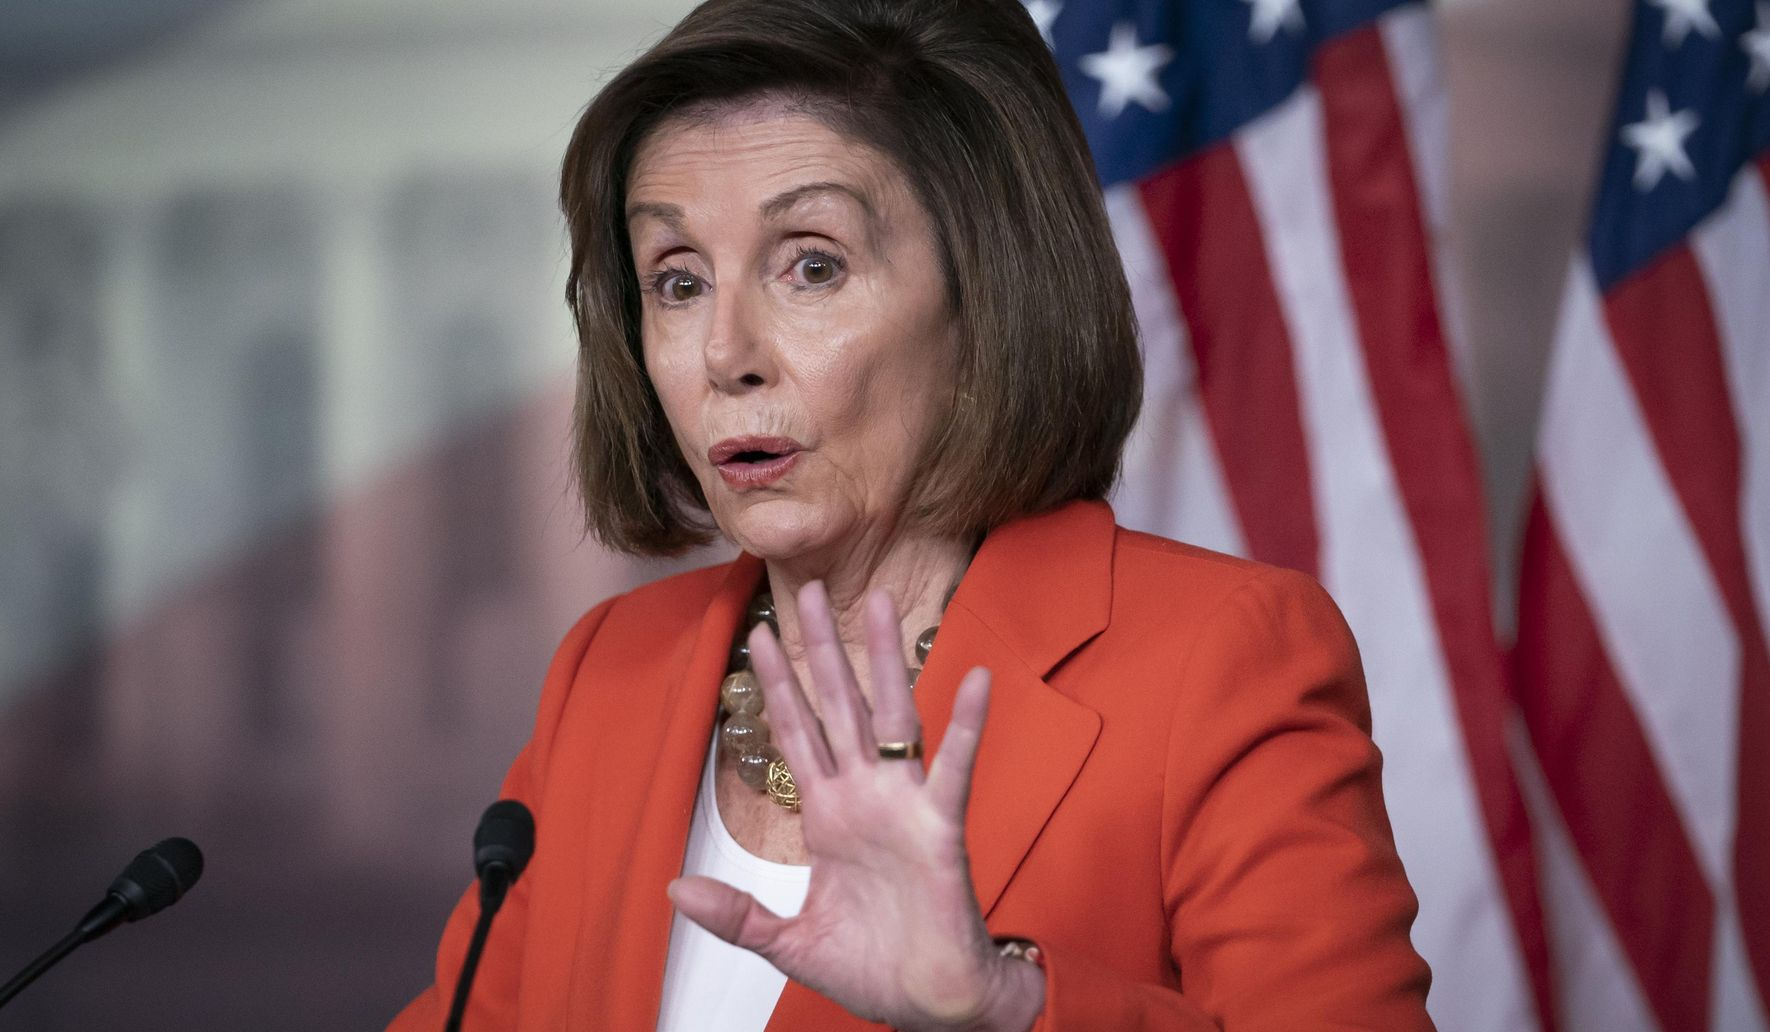 Nancy Pelosi on Stephen Colbert show says of impeachment inquiry: 'This is about the Constitution'